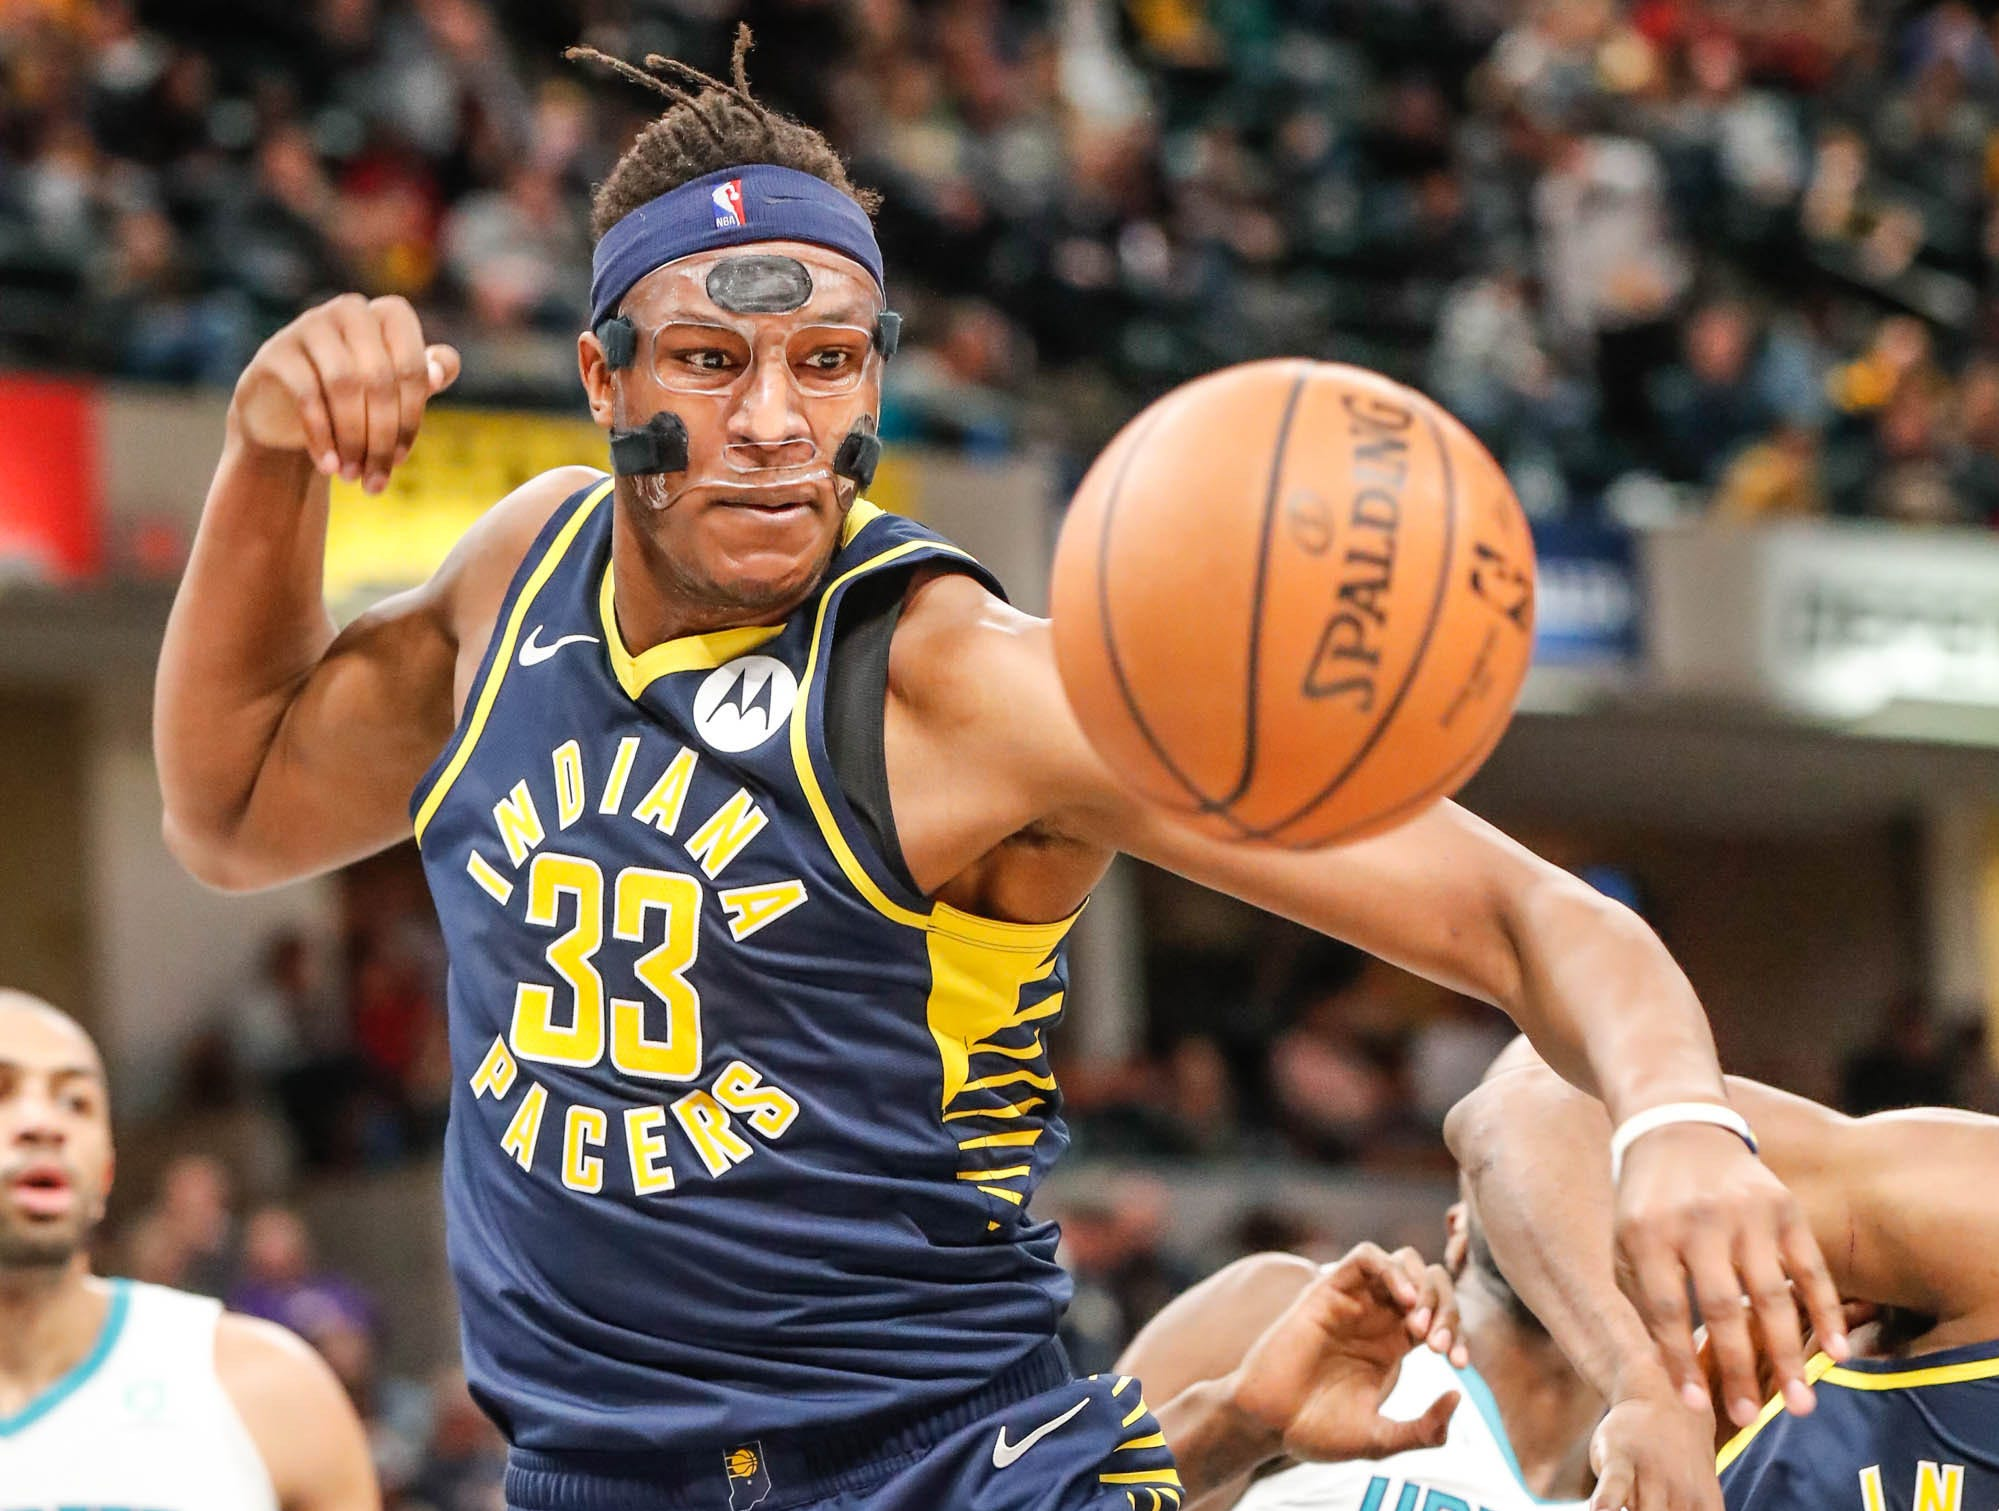 Indiana Pacers center Myles Turner (33), grabs for a loose ball during a game between the Pacers and Hornets at Bankers Life Fieldhouse on Sunday, Jan. 20, 2019.